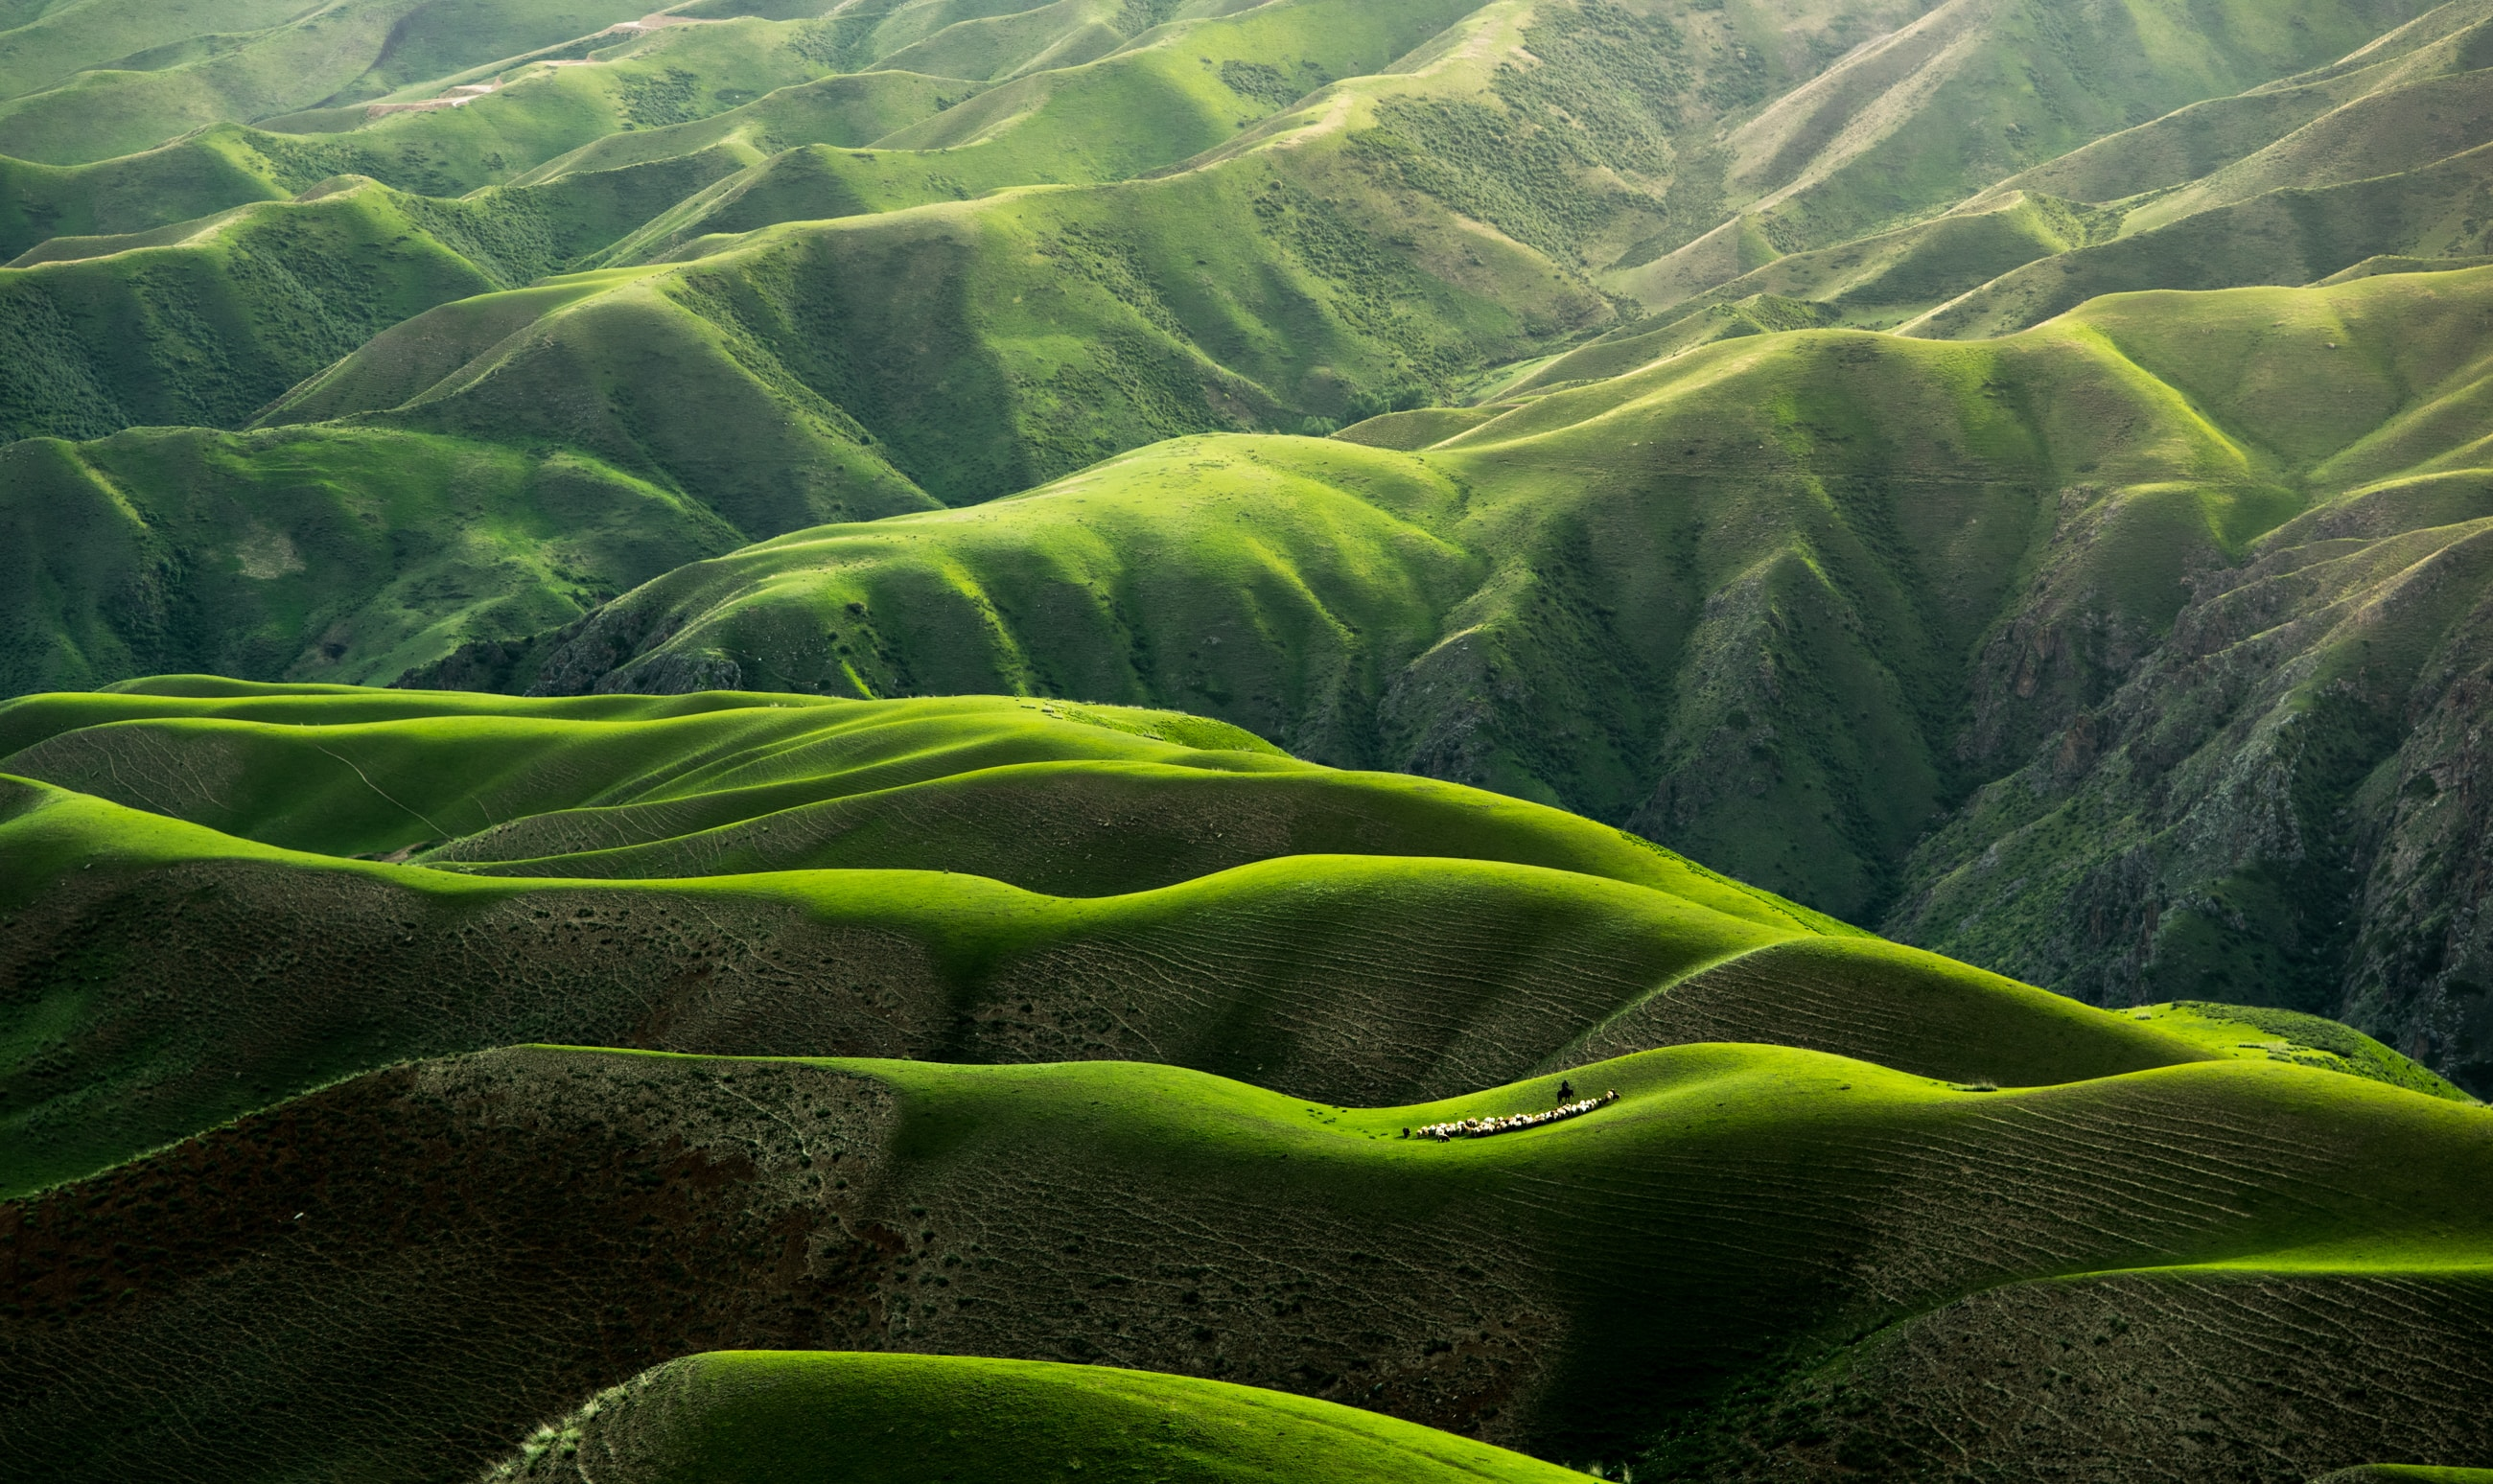 wallpaper Bird's eye view photograph of green mountains